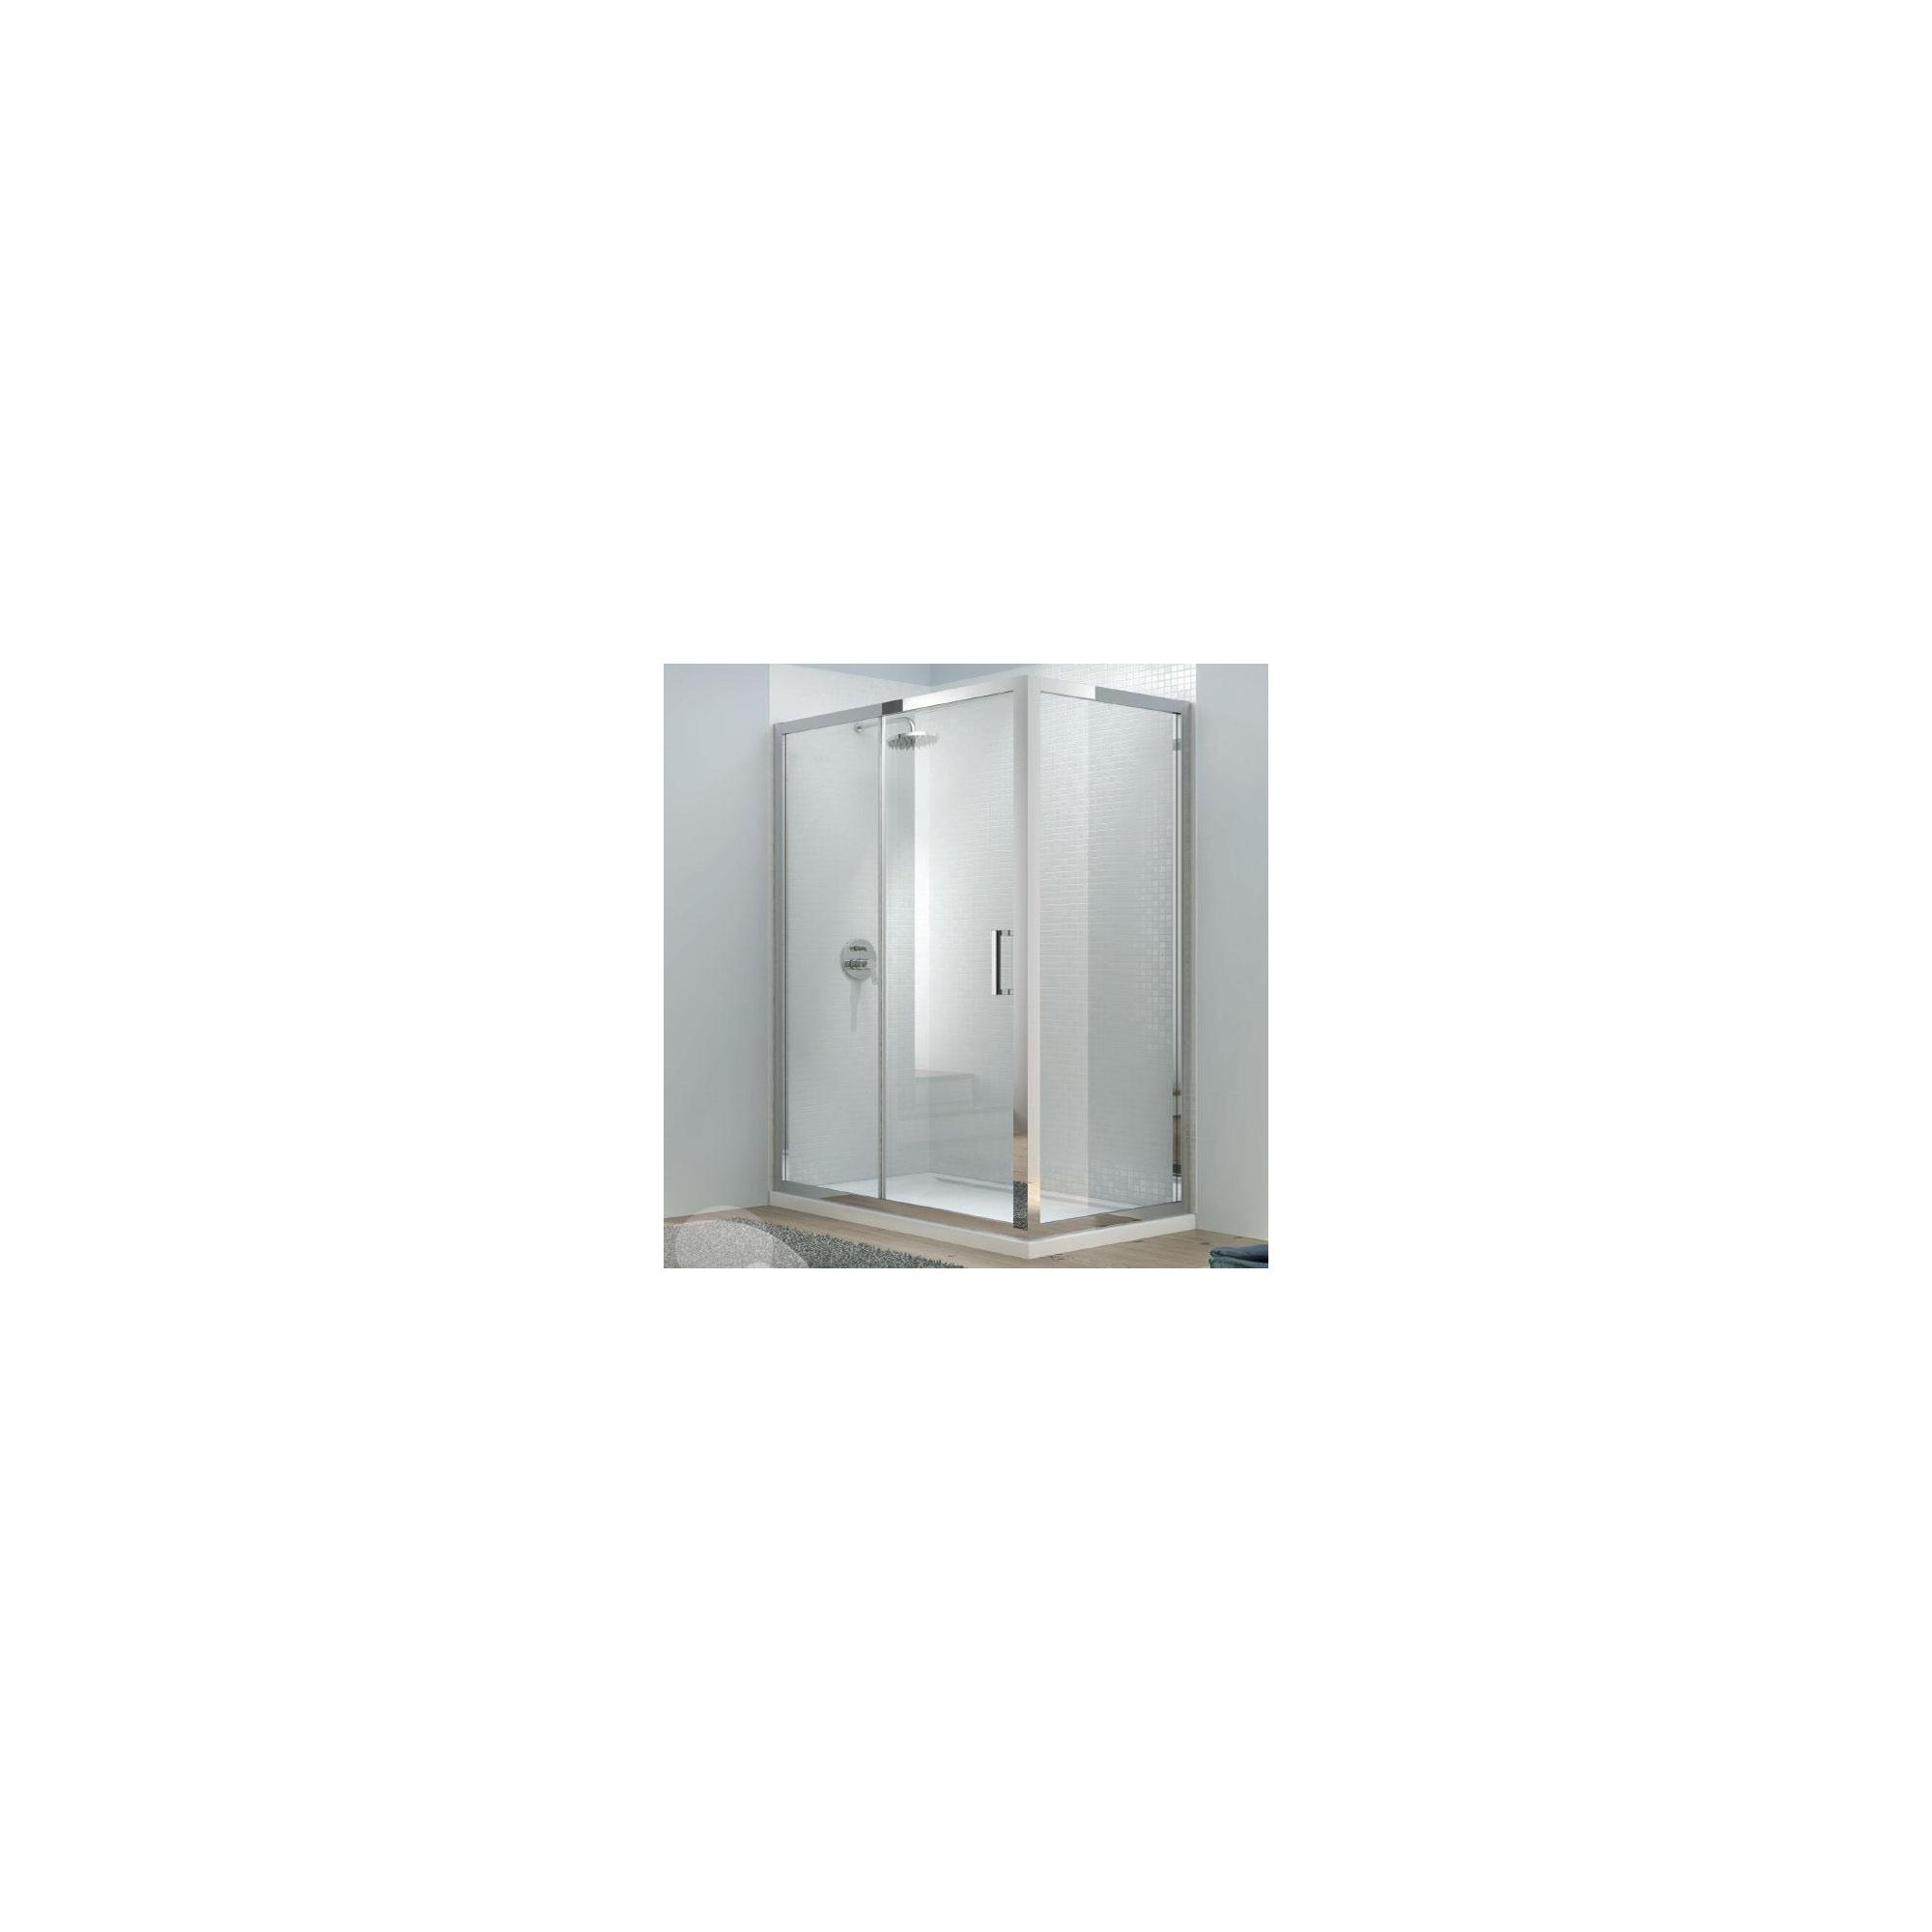 Merlyn Vivid Eight Sliding Door Shower Enclosure, 1500mm x 800mm, Low Profile Tray, 8mm Glass at Tesco Direct